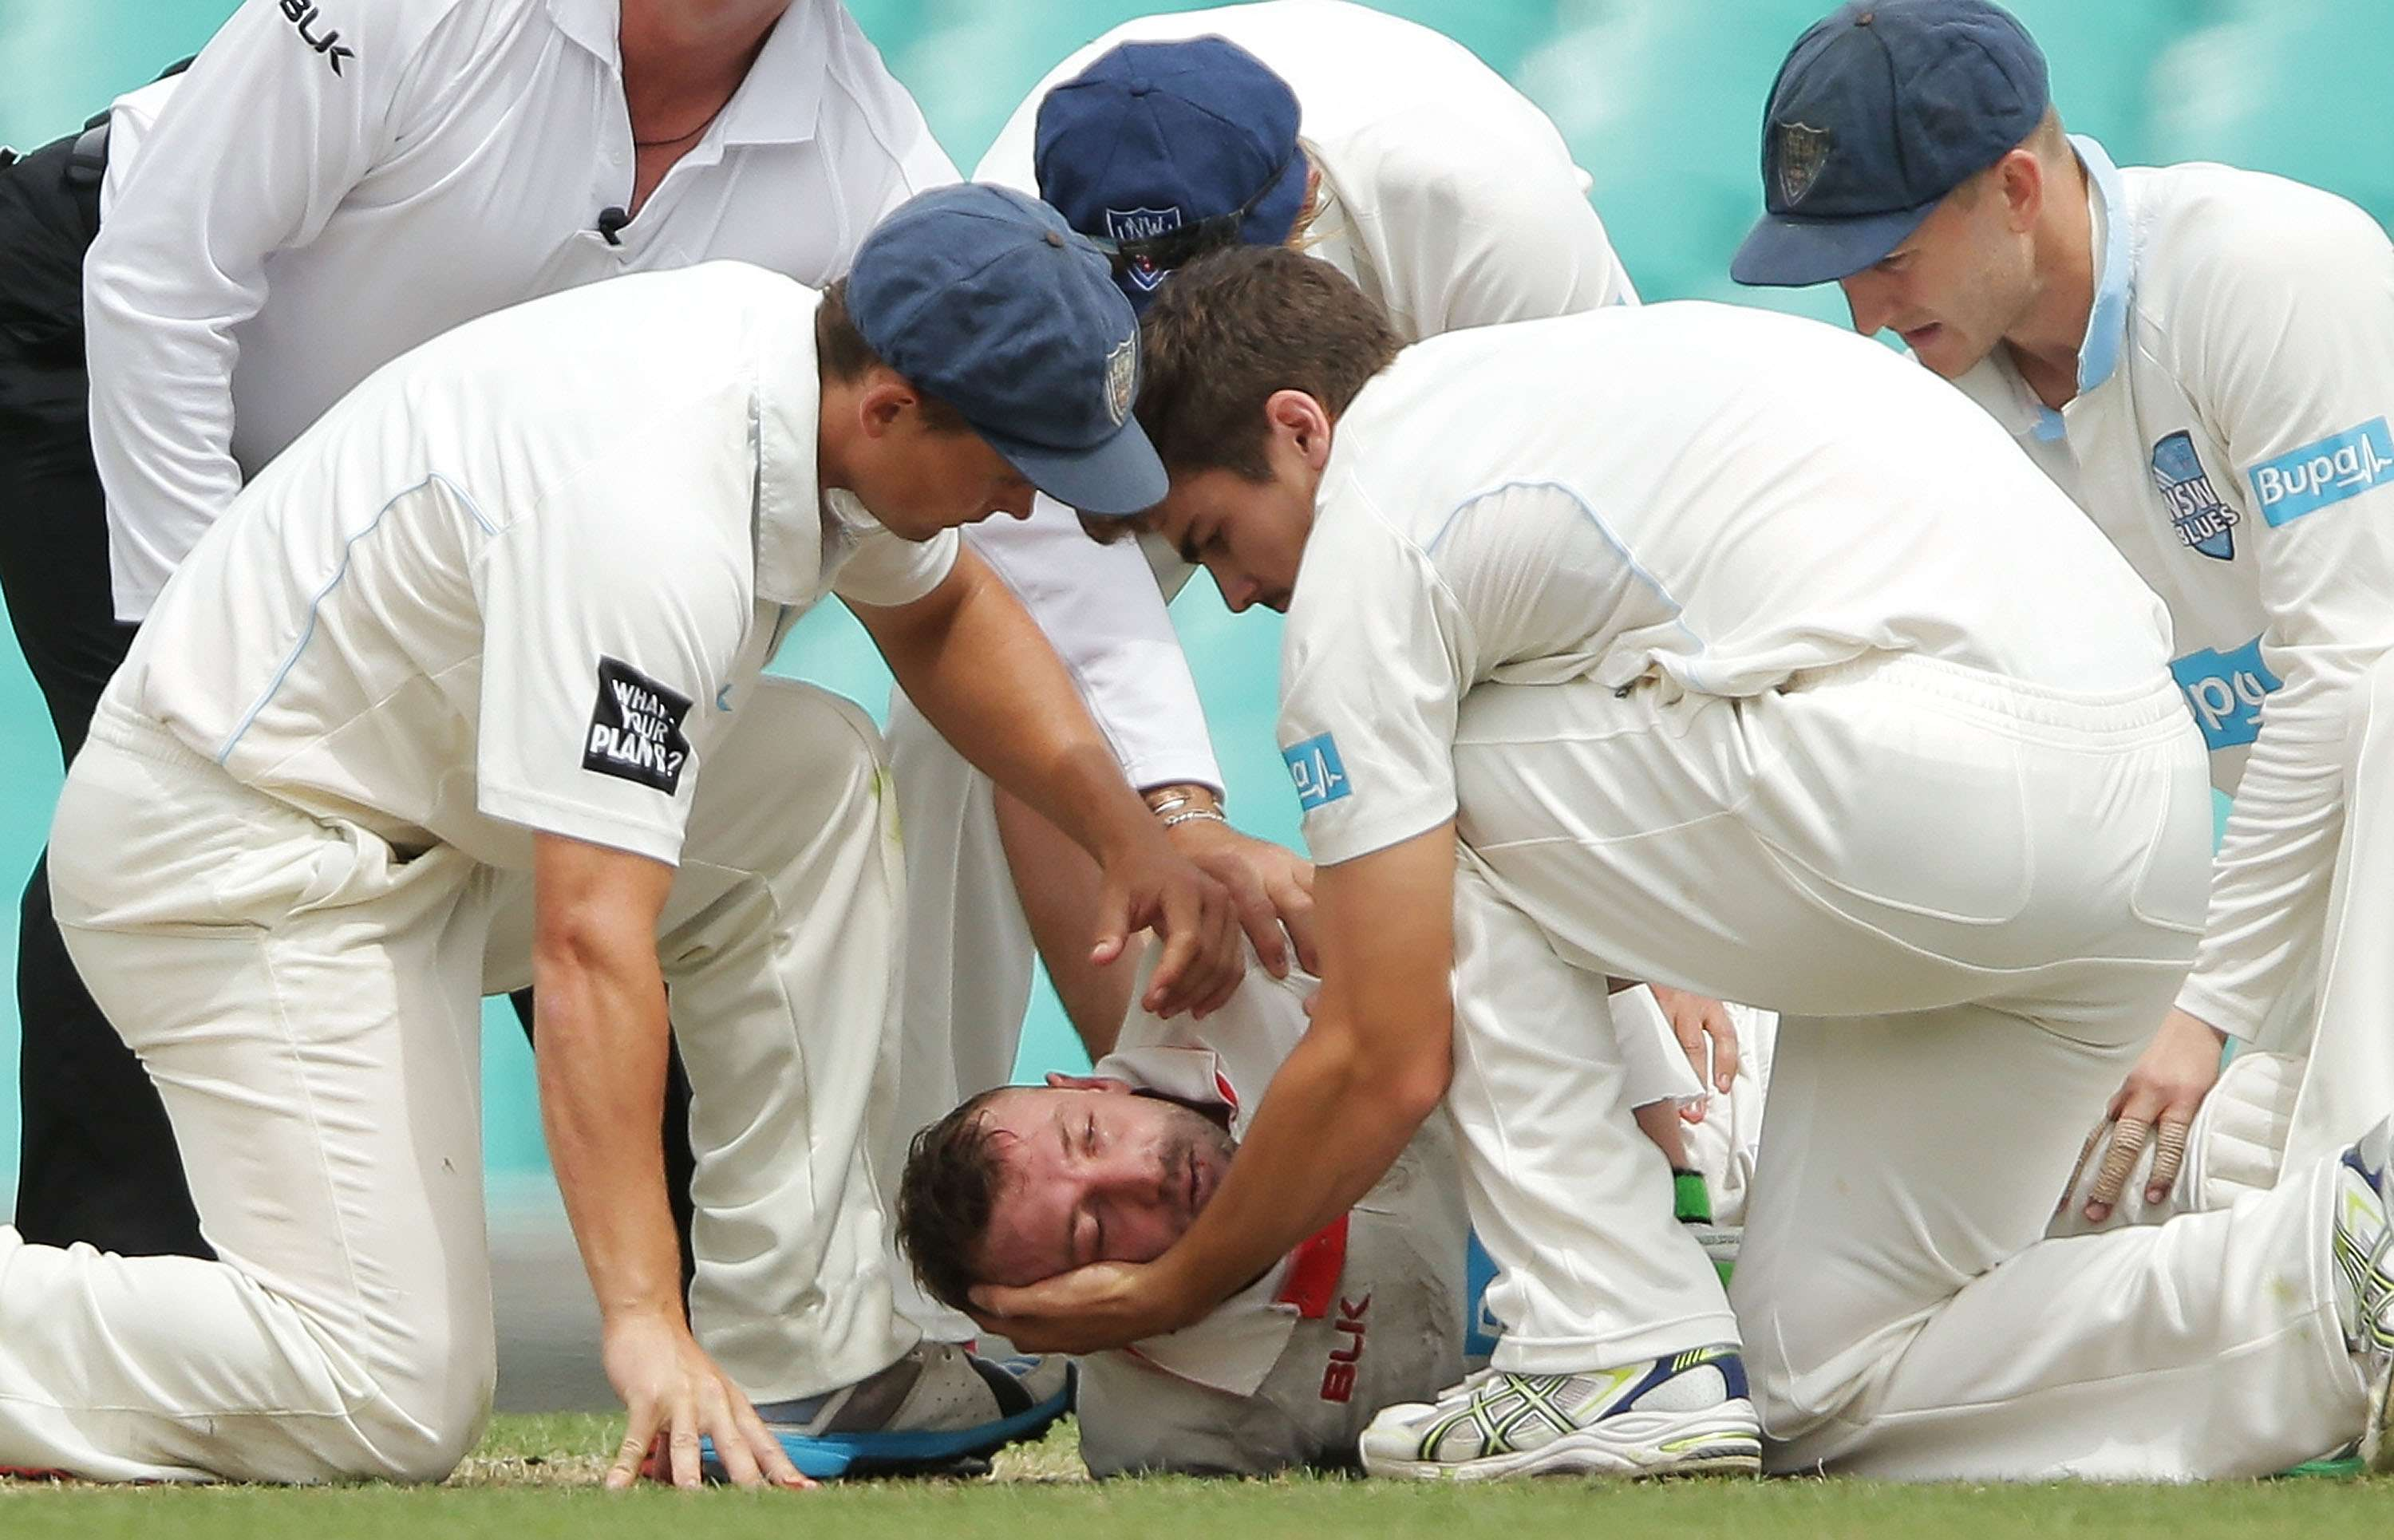 Phillip Hughes al sufrir un terrible golpe en la cabeza. Foto: Getty Images